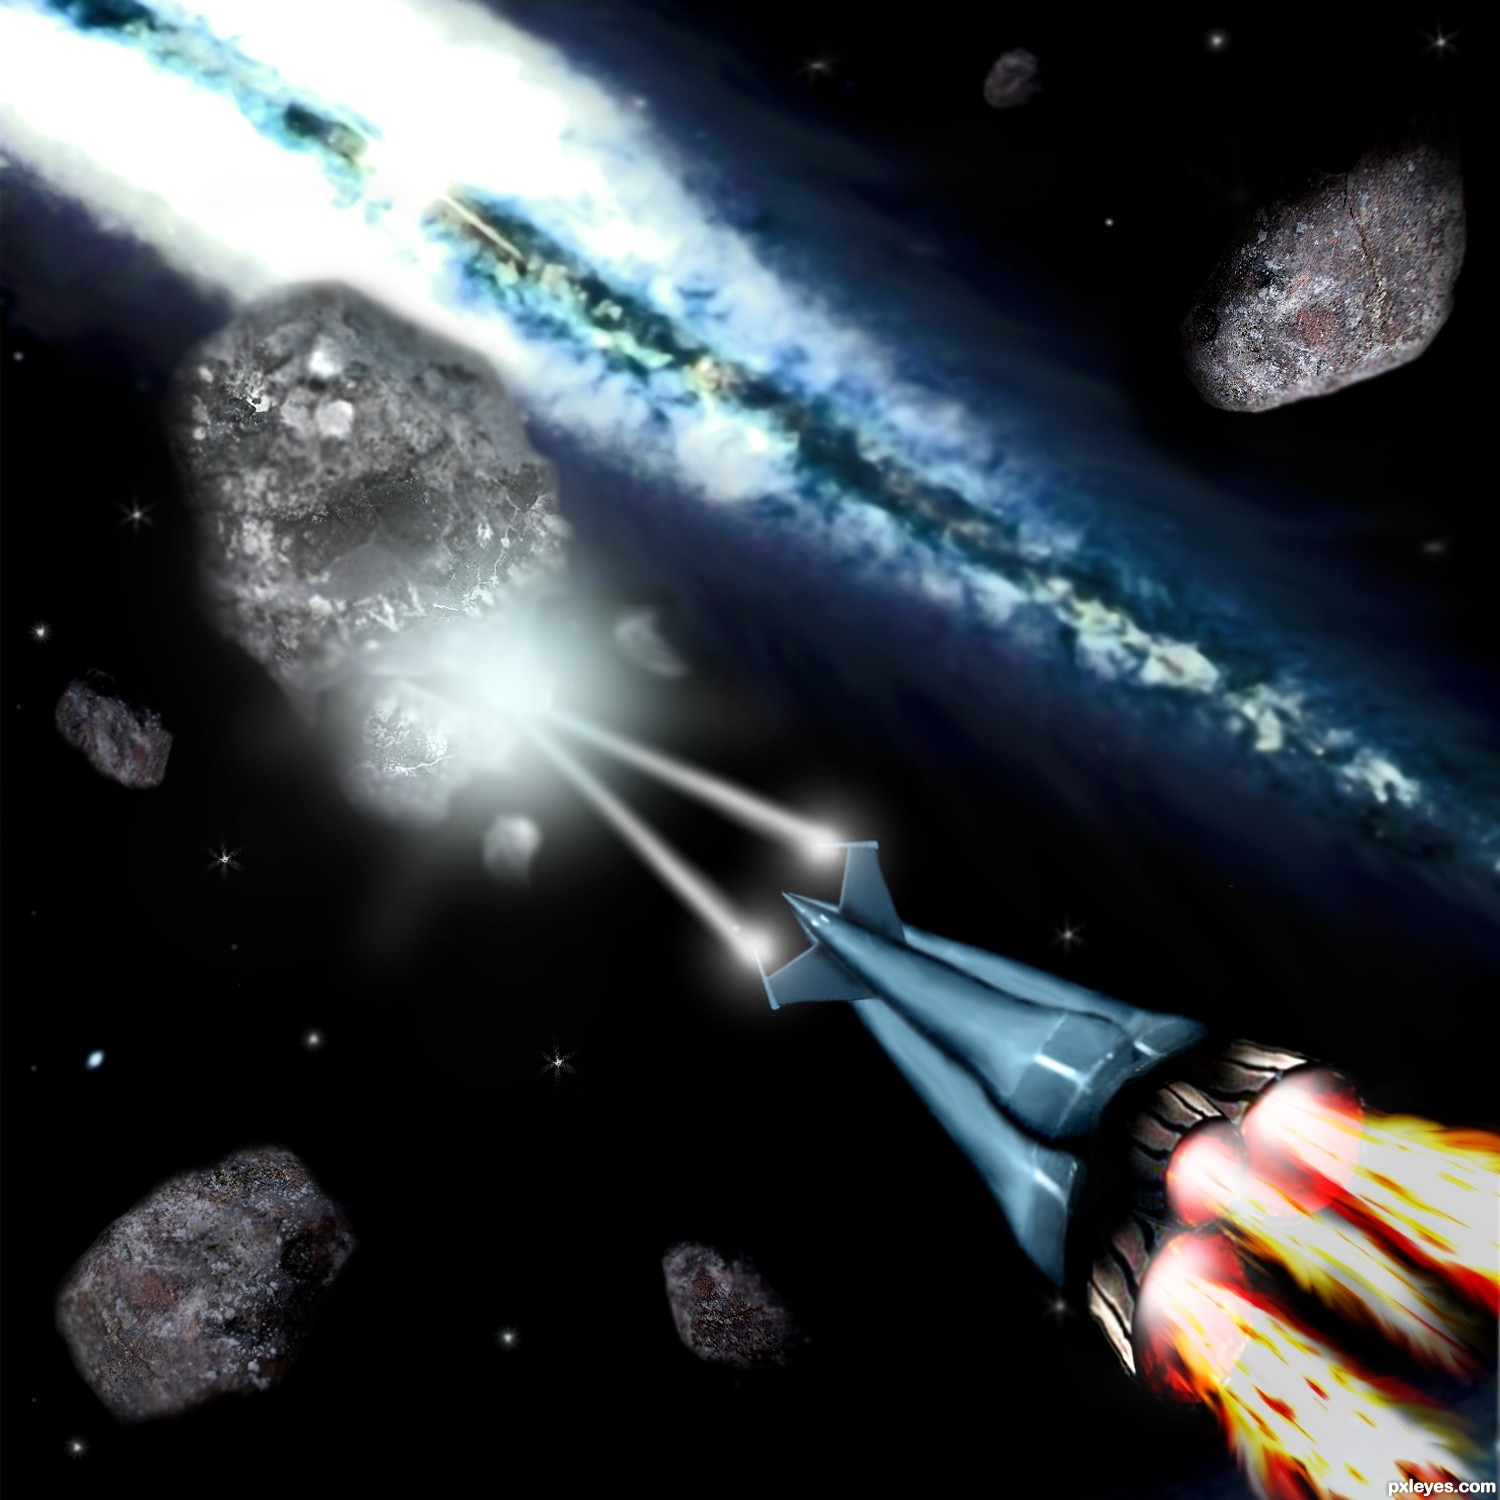 shooting asteroids from earth view - photo #1